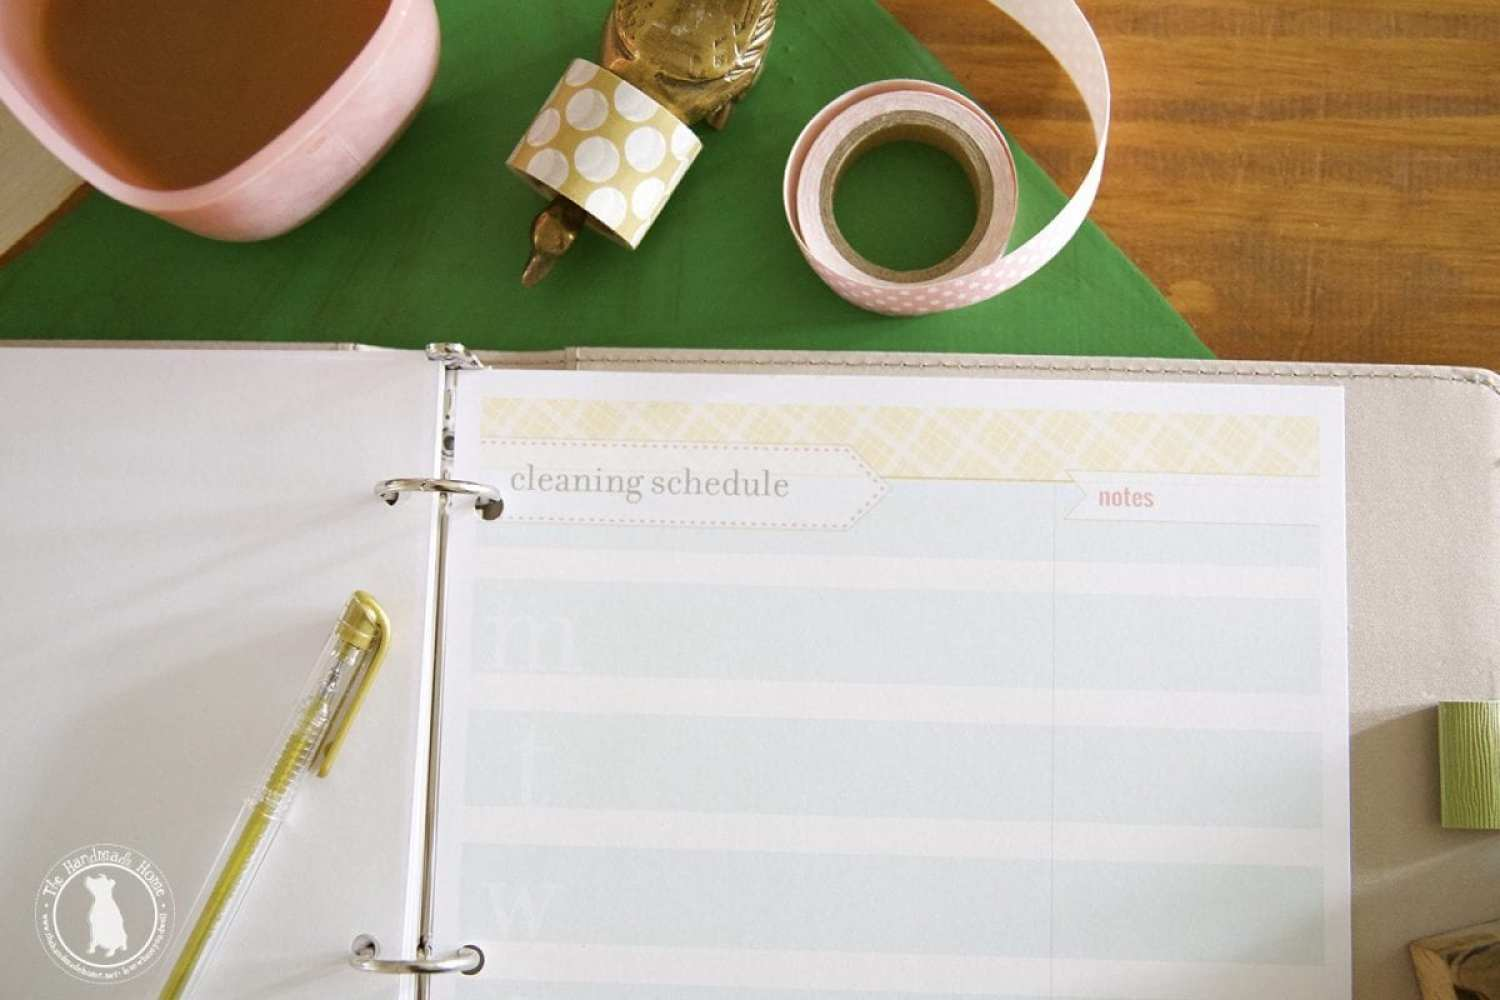 cleaning_schedule